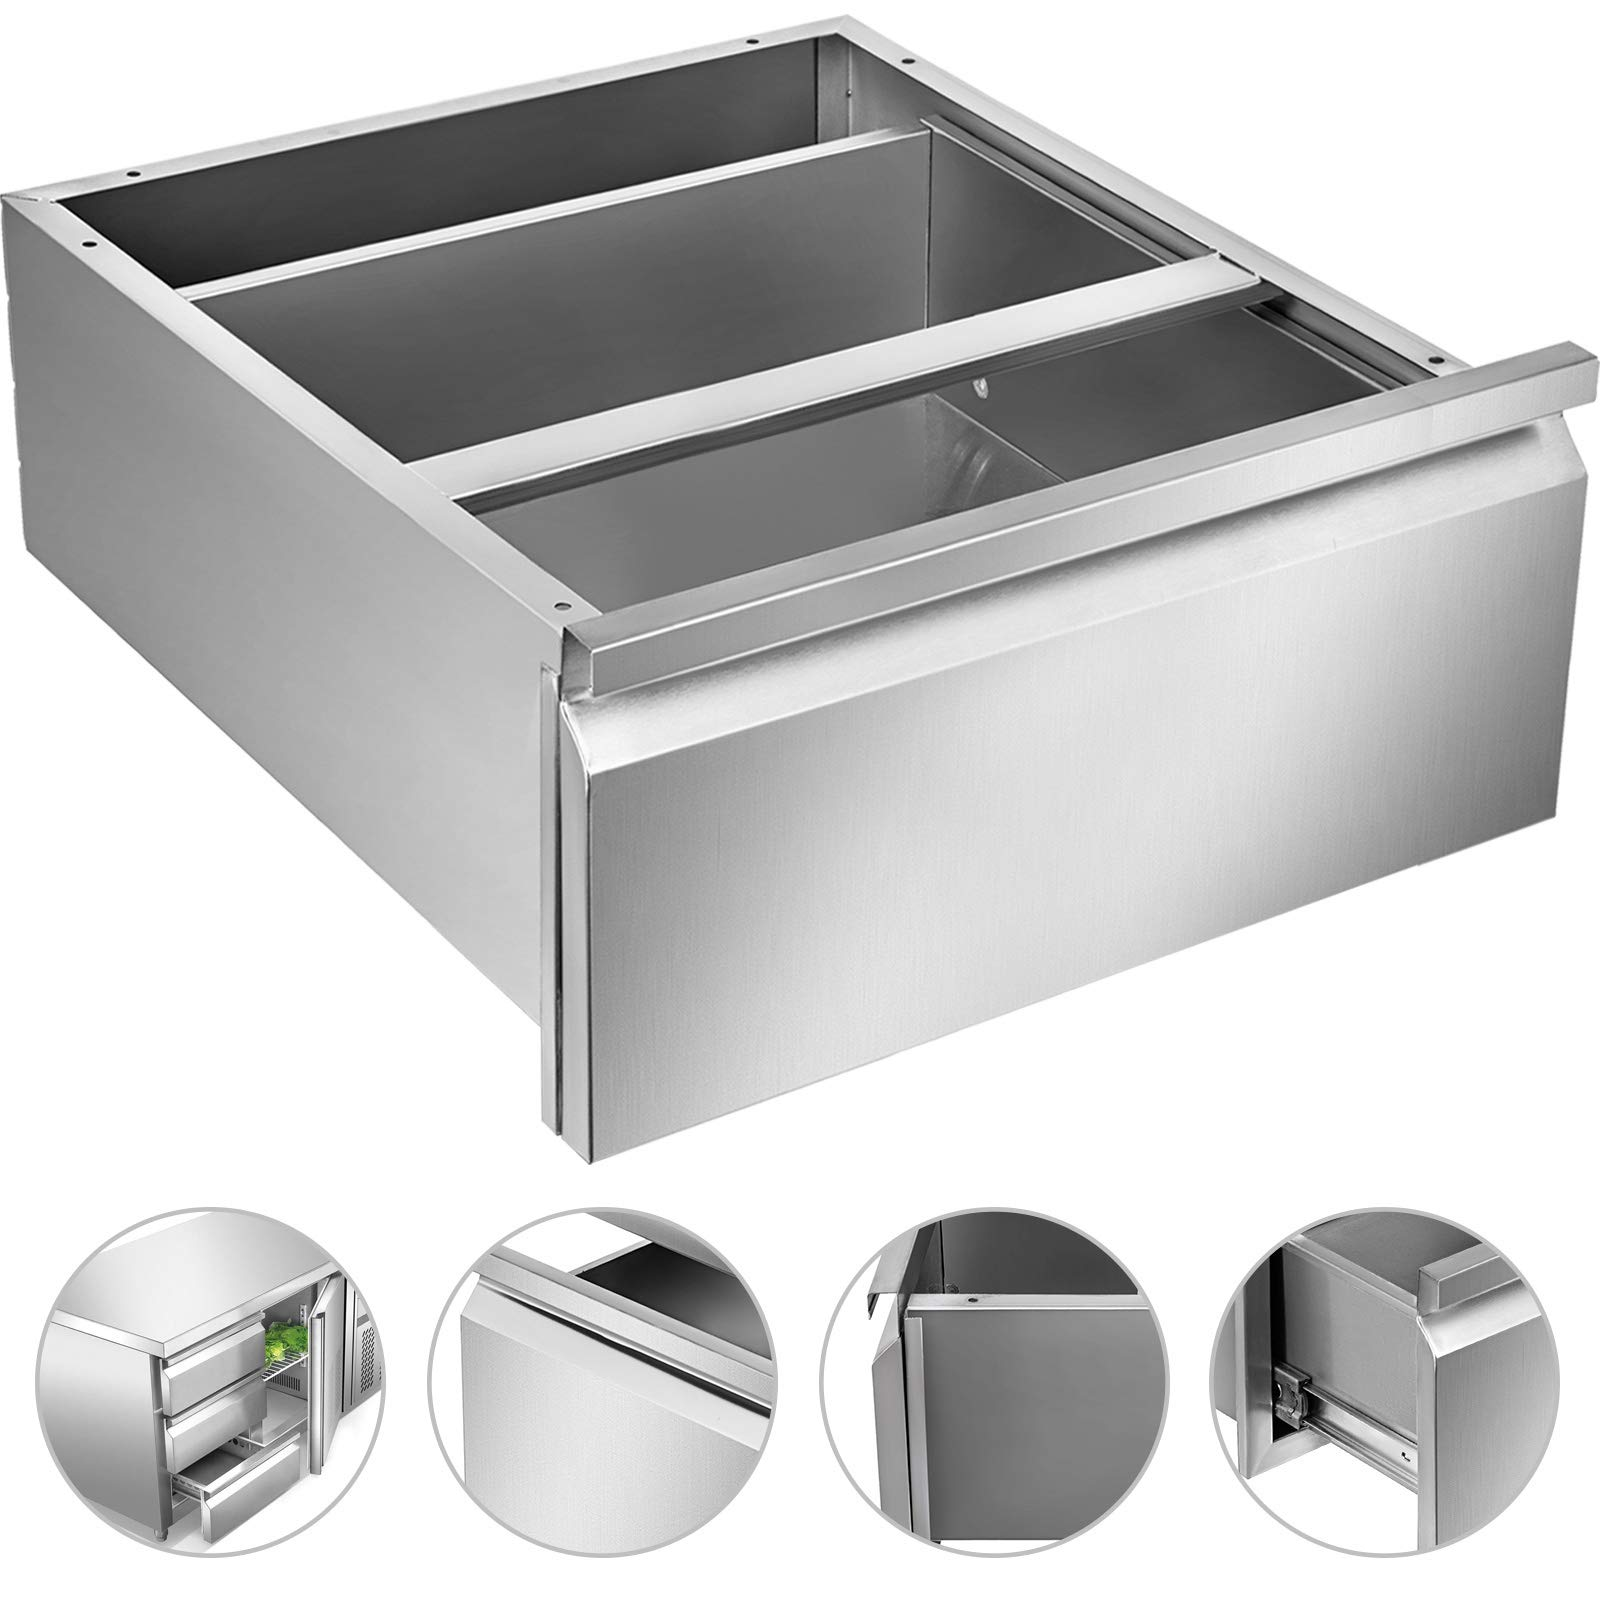 Mophorn Outdoor Kitchen Drawer Stainless Steel BBQ Storage with Chrome Handle Flush Mount Sliver (20 x 20 x 8 Inch, Single Worktable Drawer)